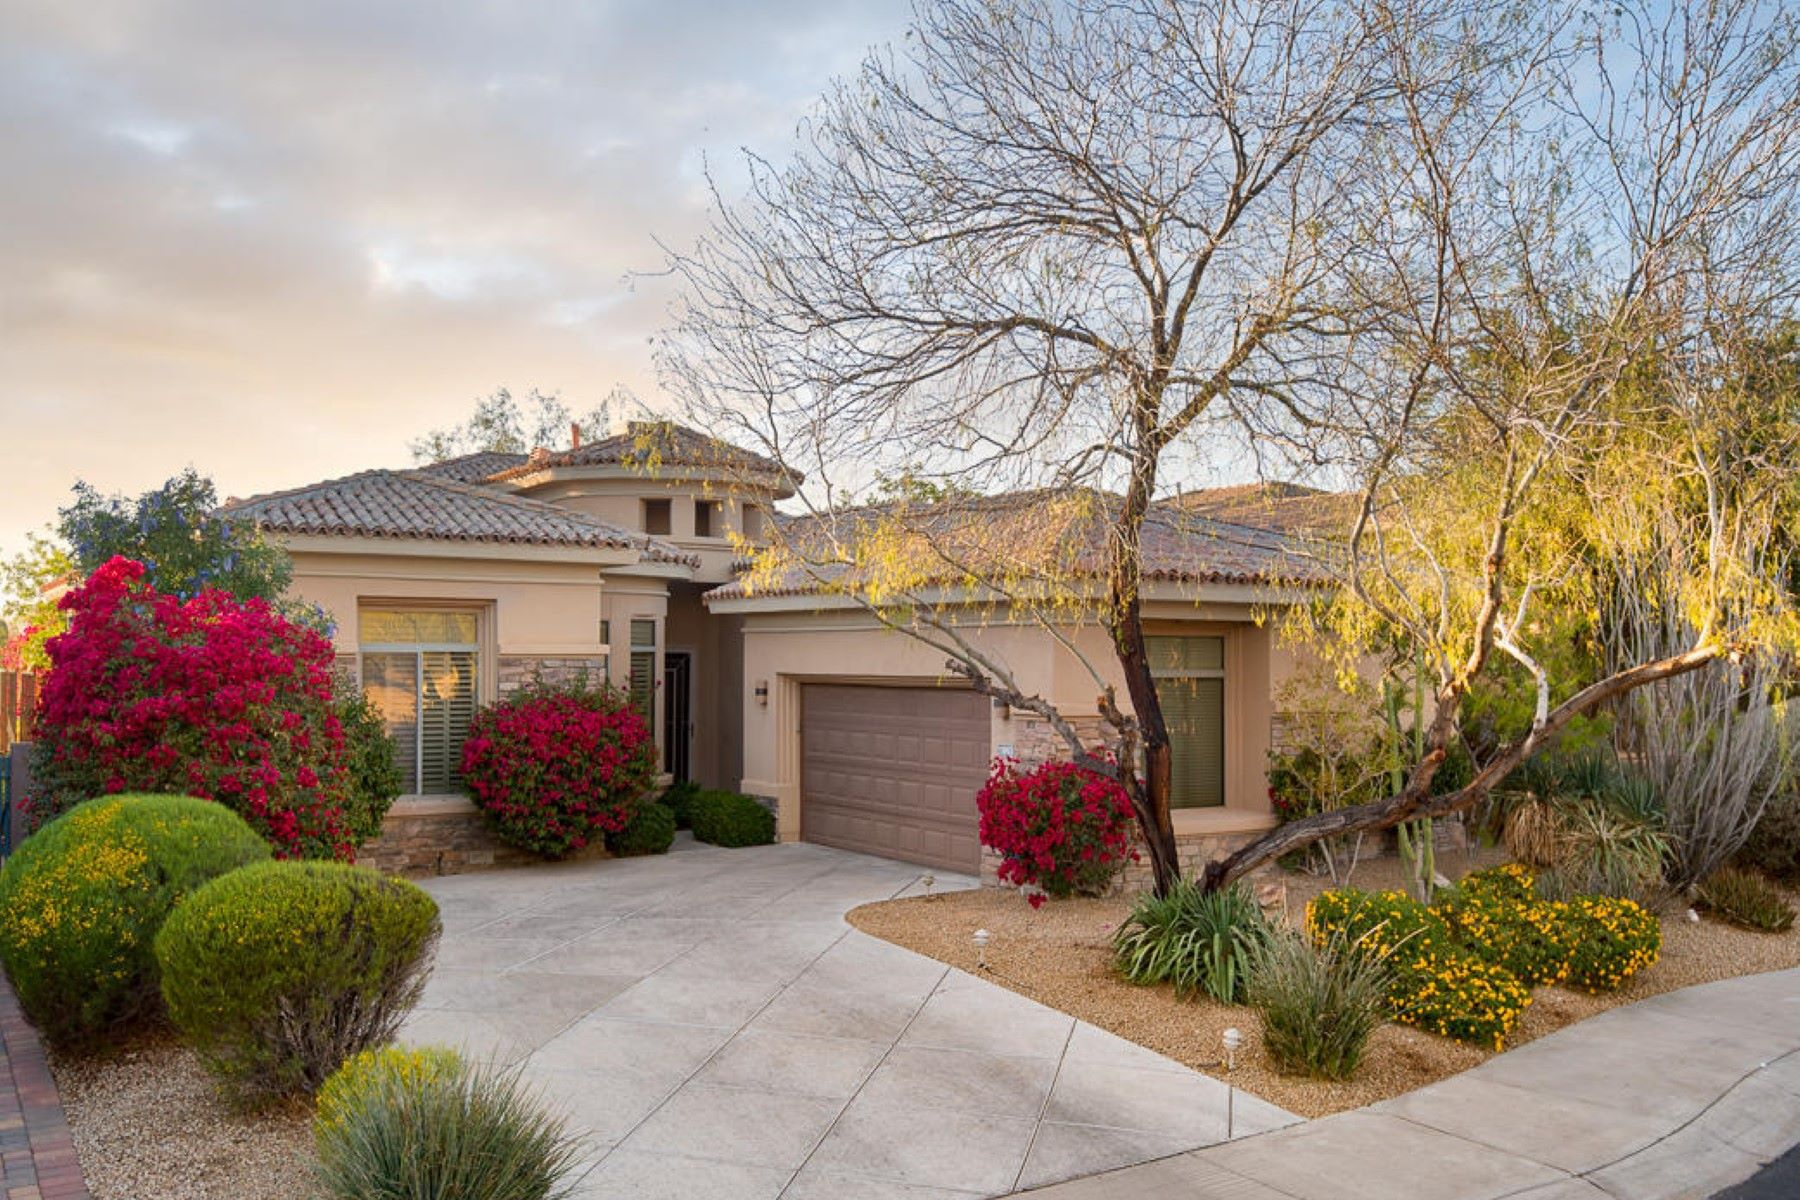 Single Family Home for Sale at Wonderful Single Family Home on the Talon Golf Course at Grayhawk 19892 N 84th St, Scottsdale, Arizona, 85255 United States